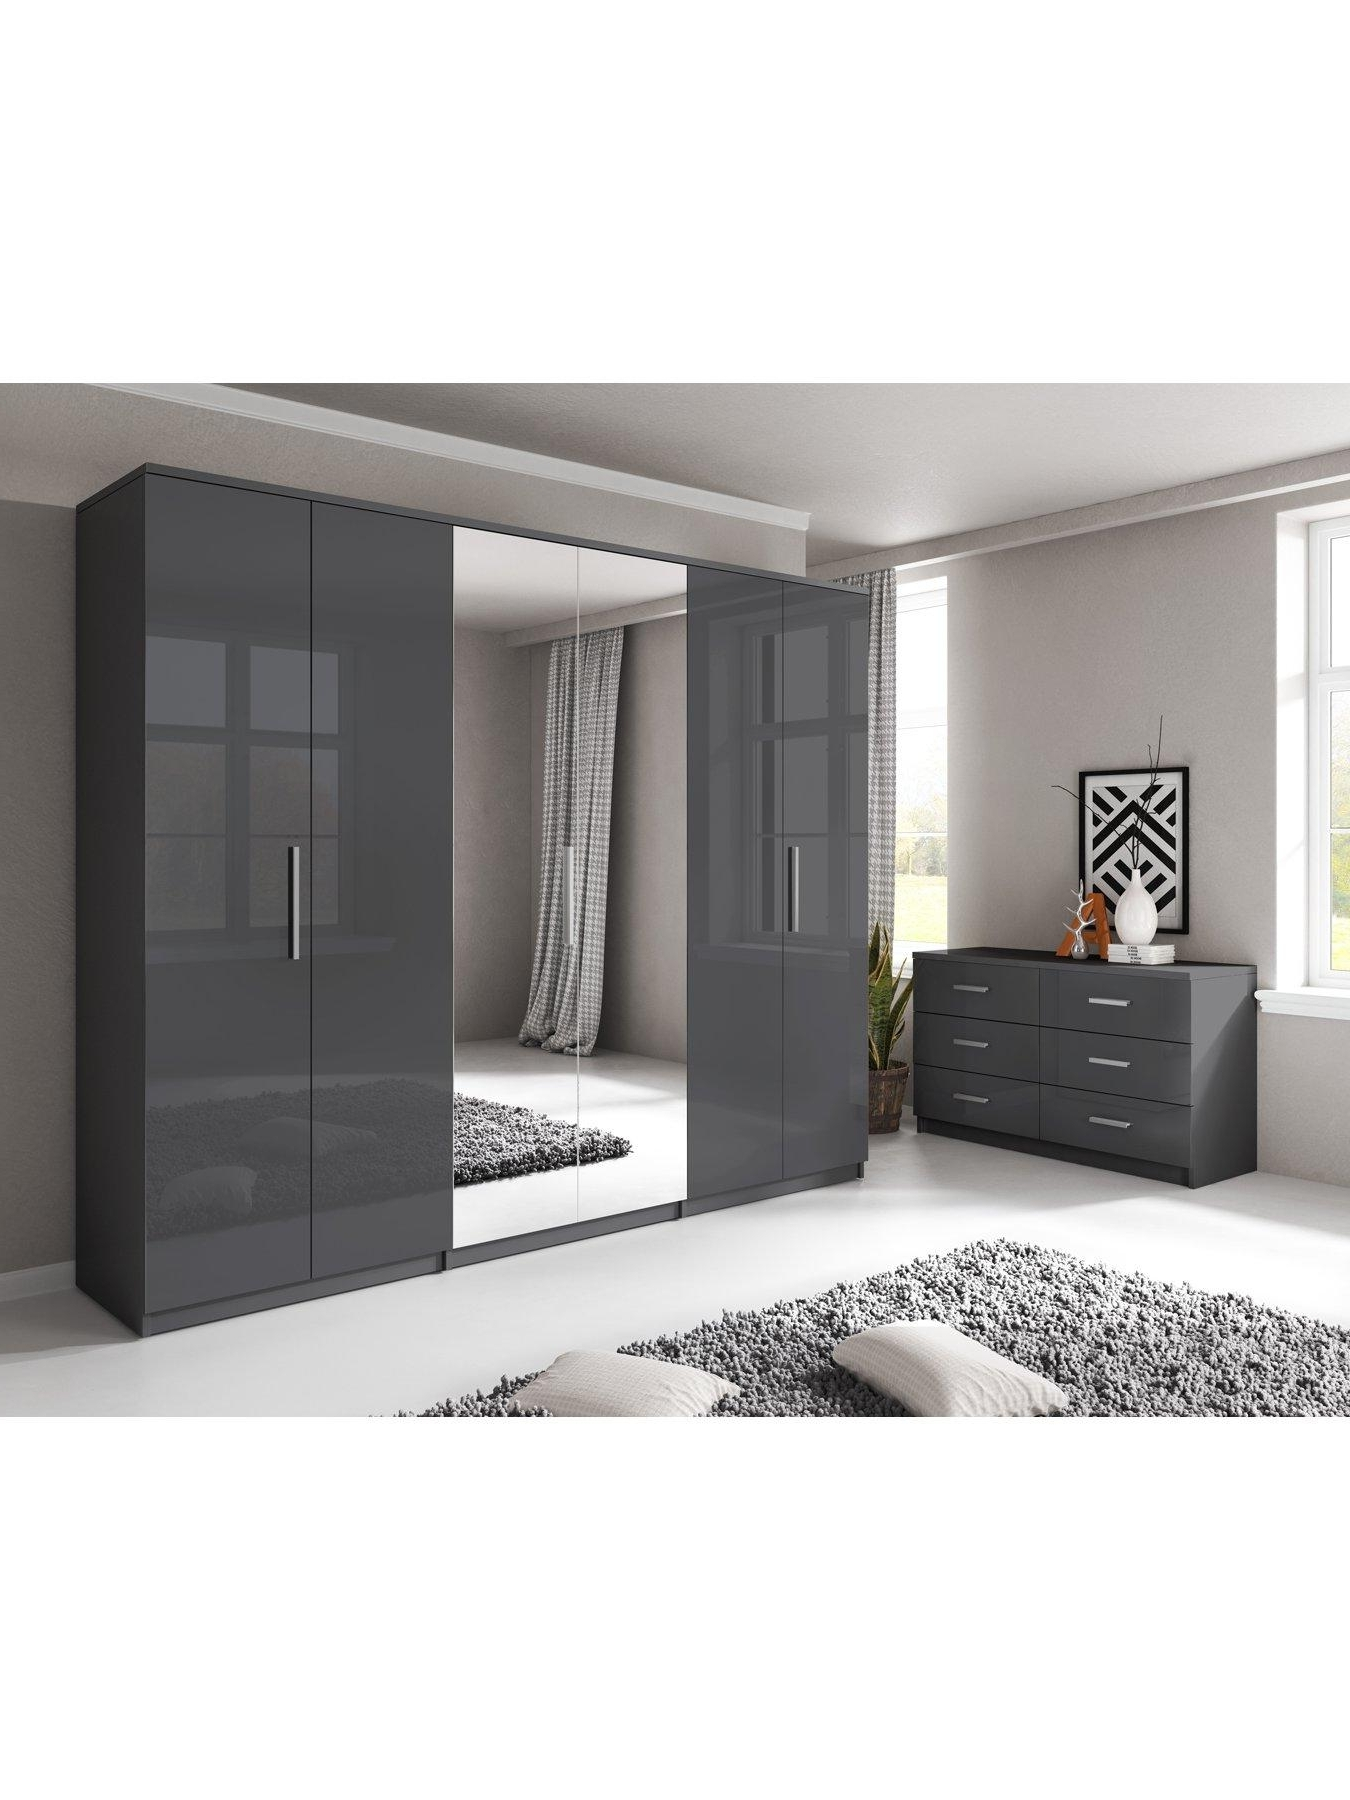 Prague Gloss 6 Door Mirrored Wardrobe (View 11 of 15)